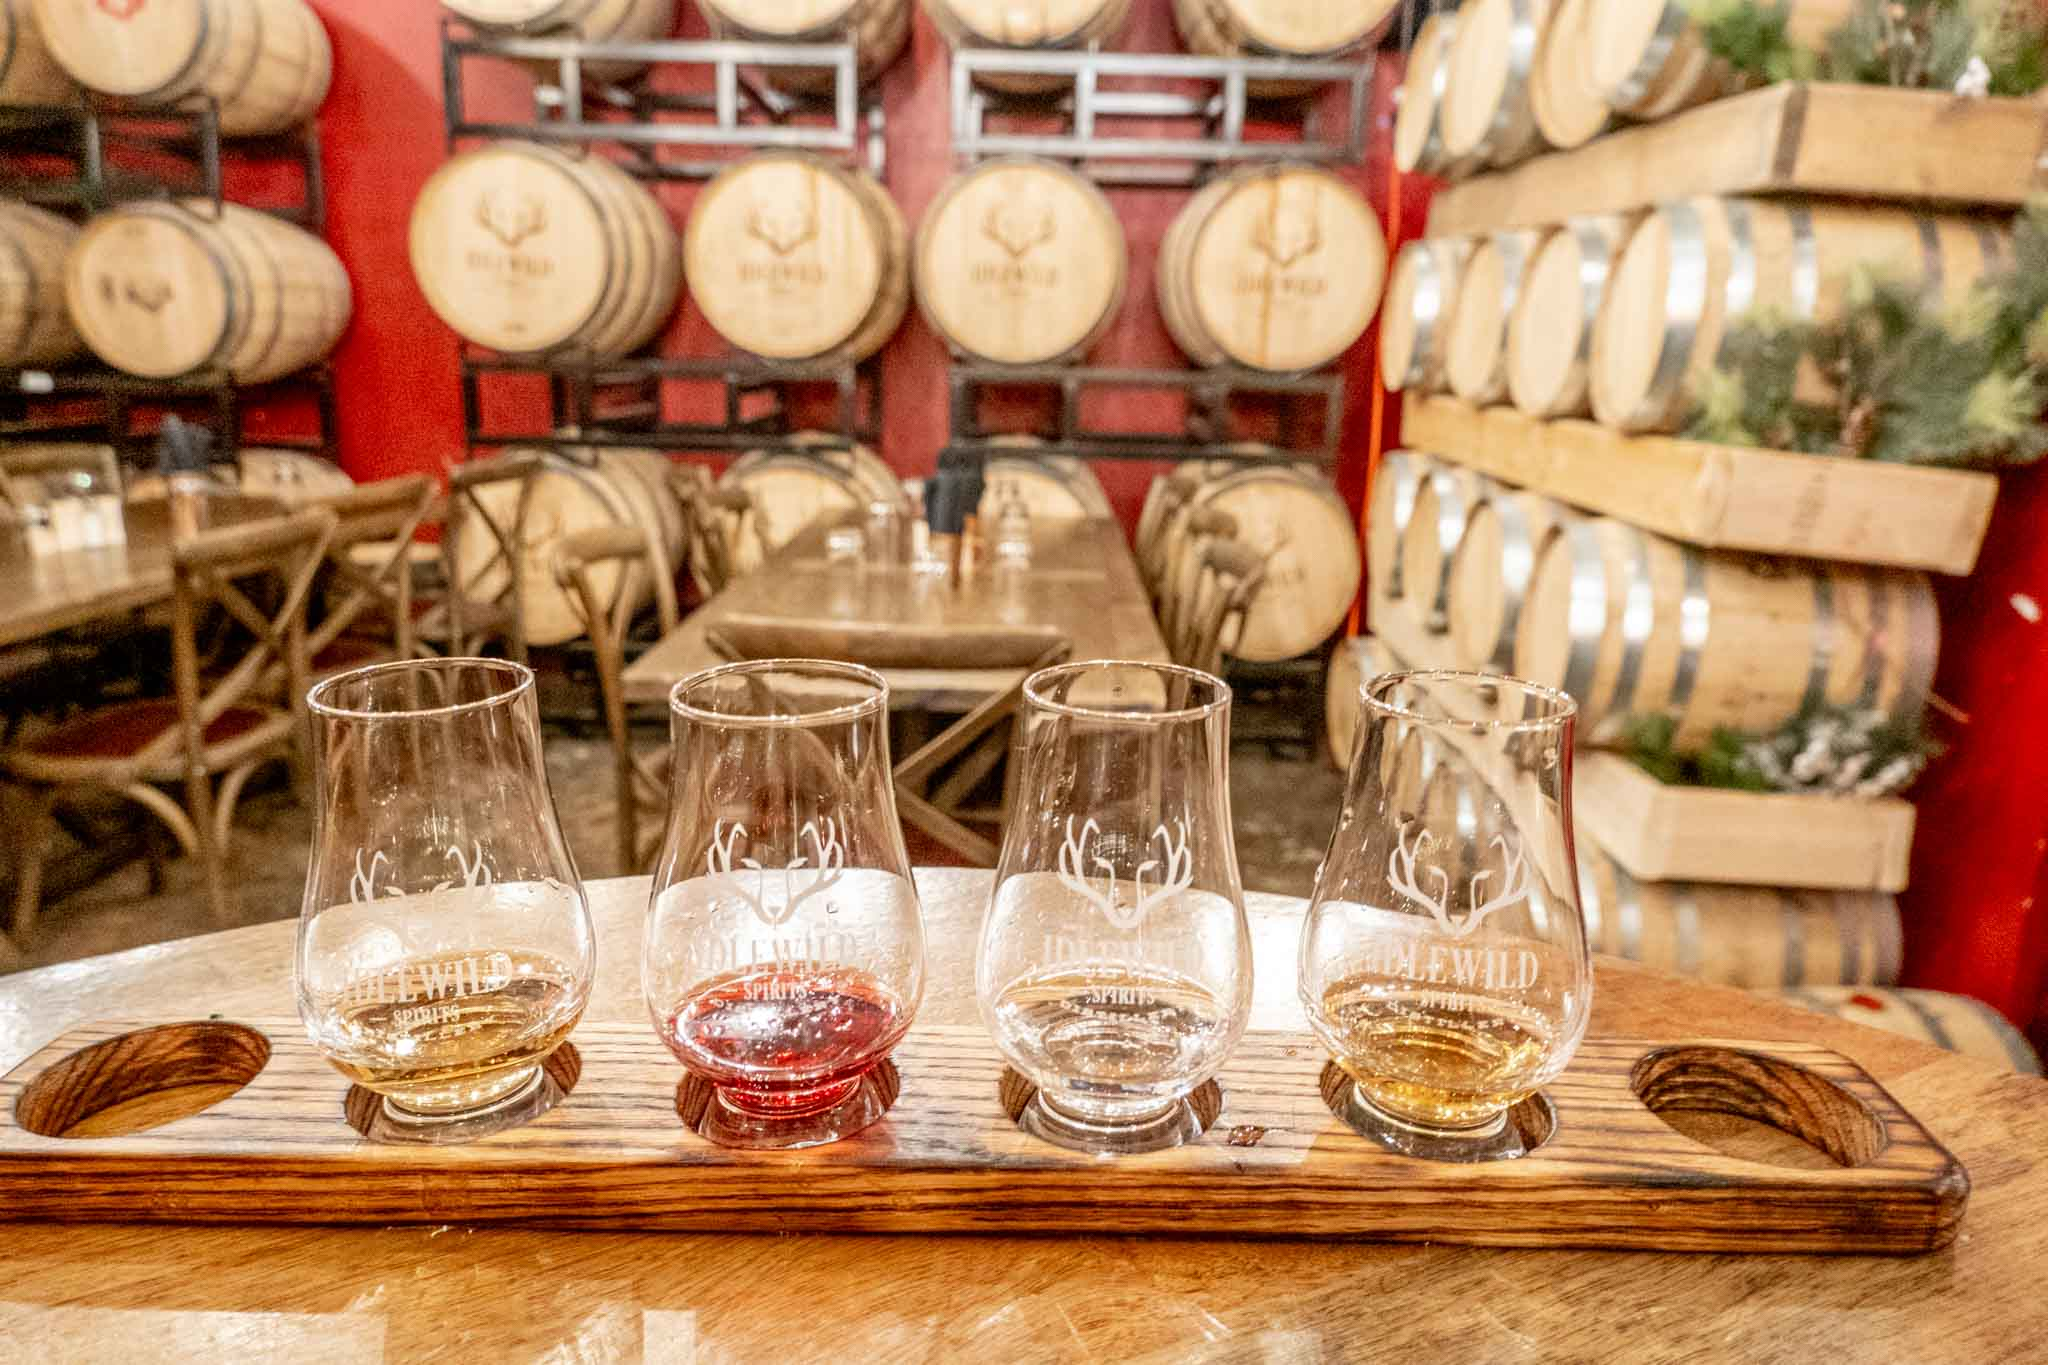 Tasting flight in a room filled with barrels